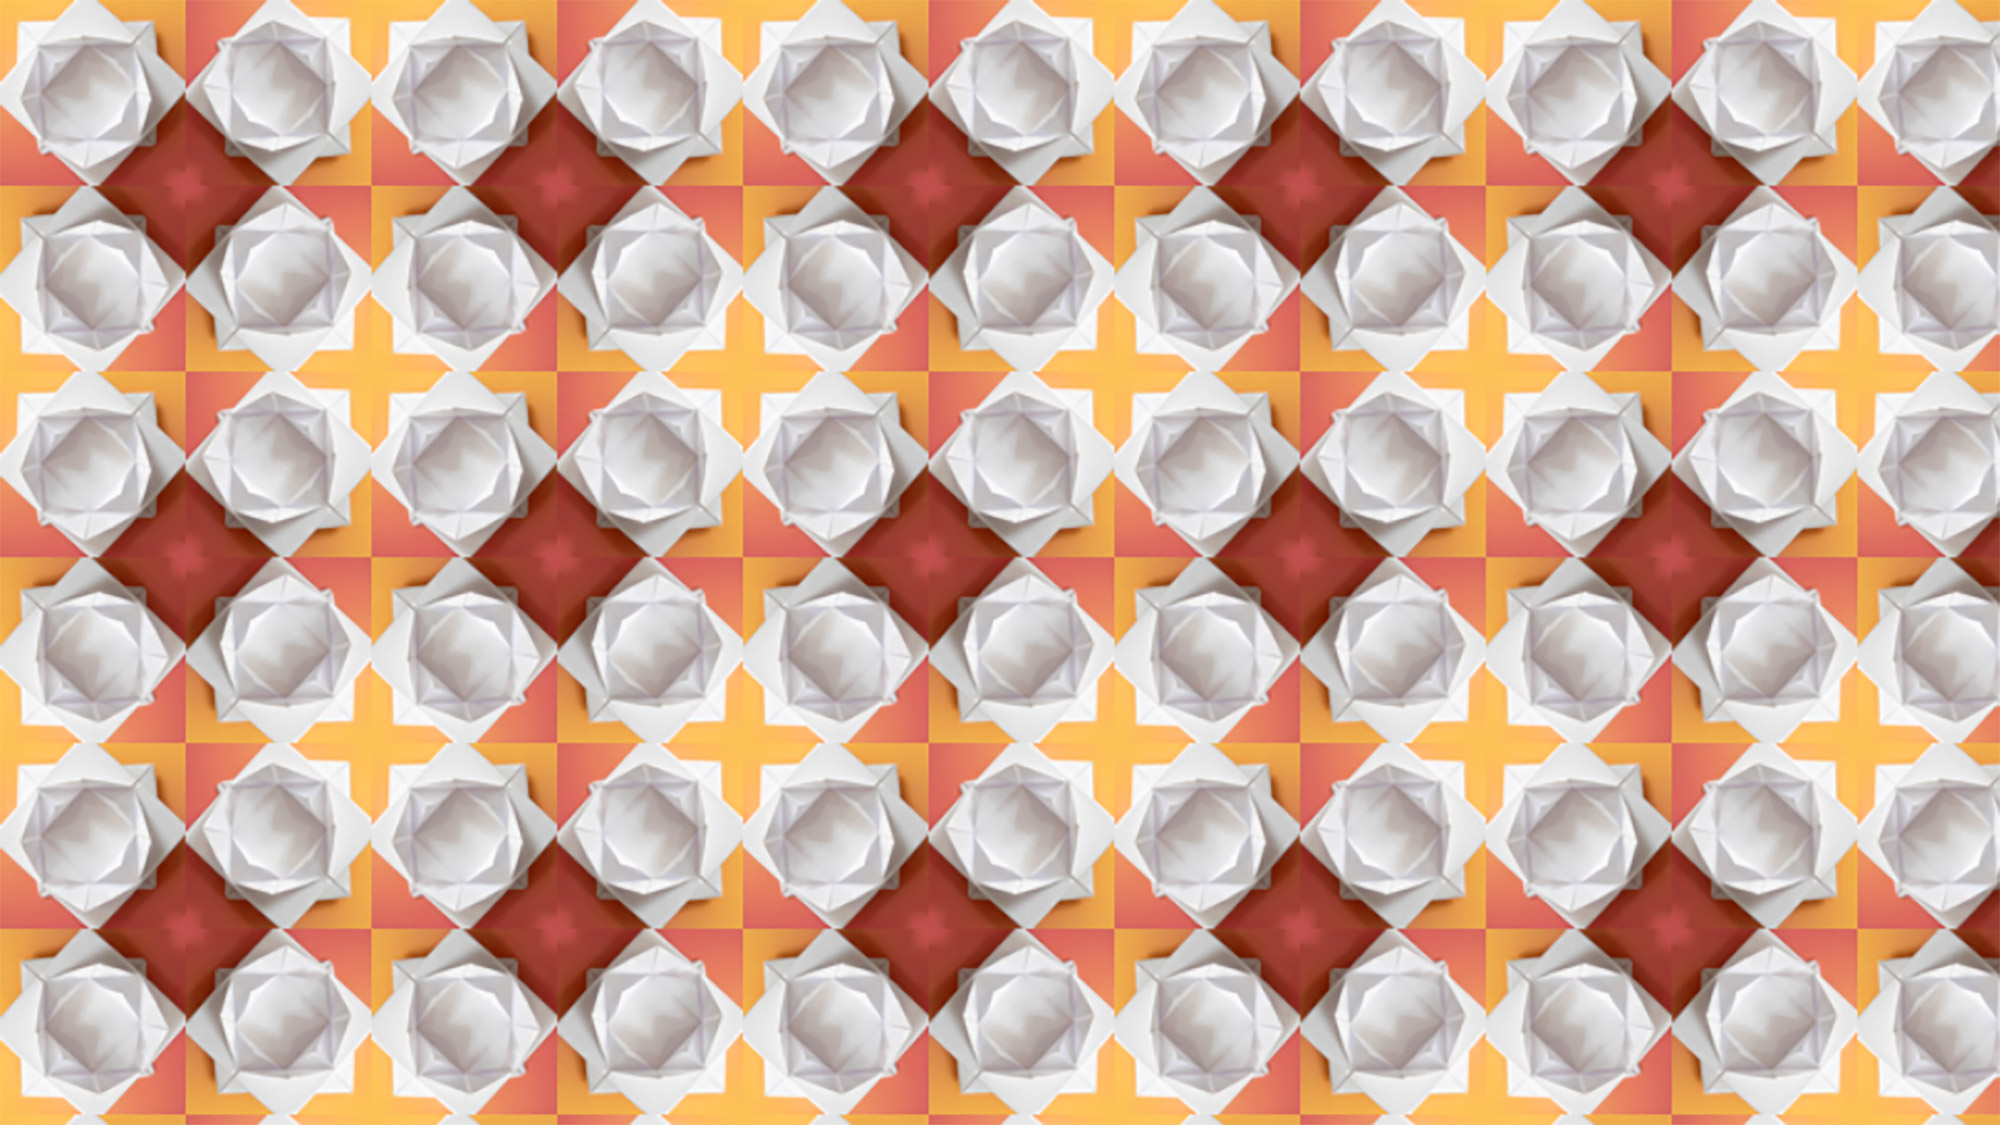 A repeating pattern of an origami lotus flower